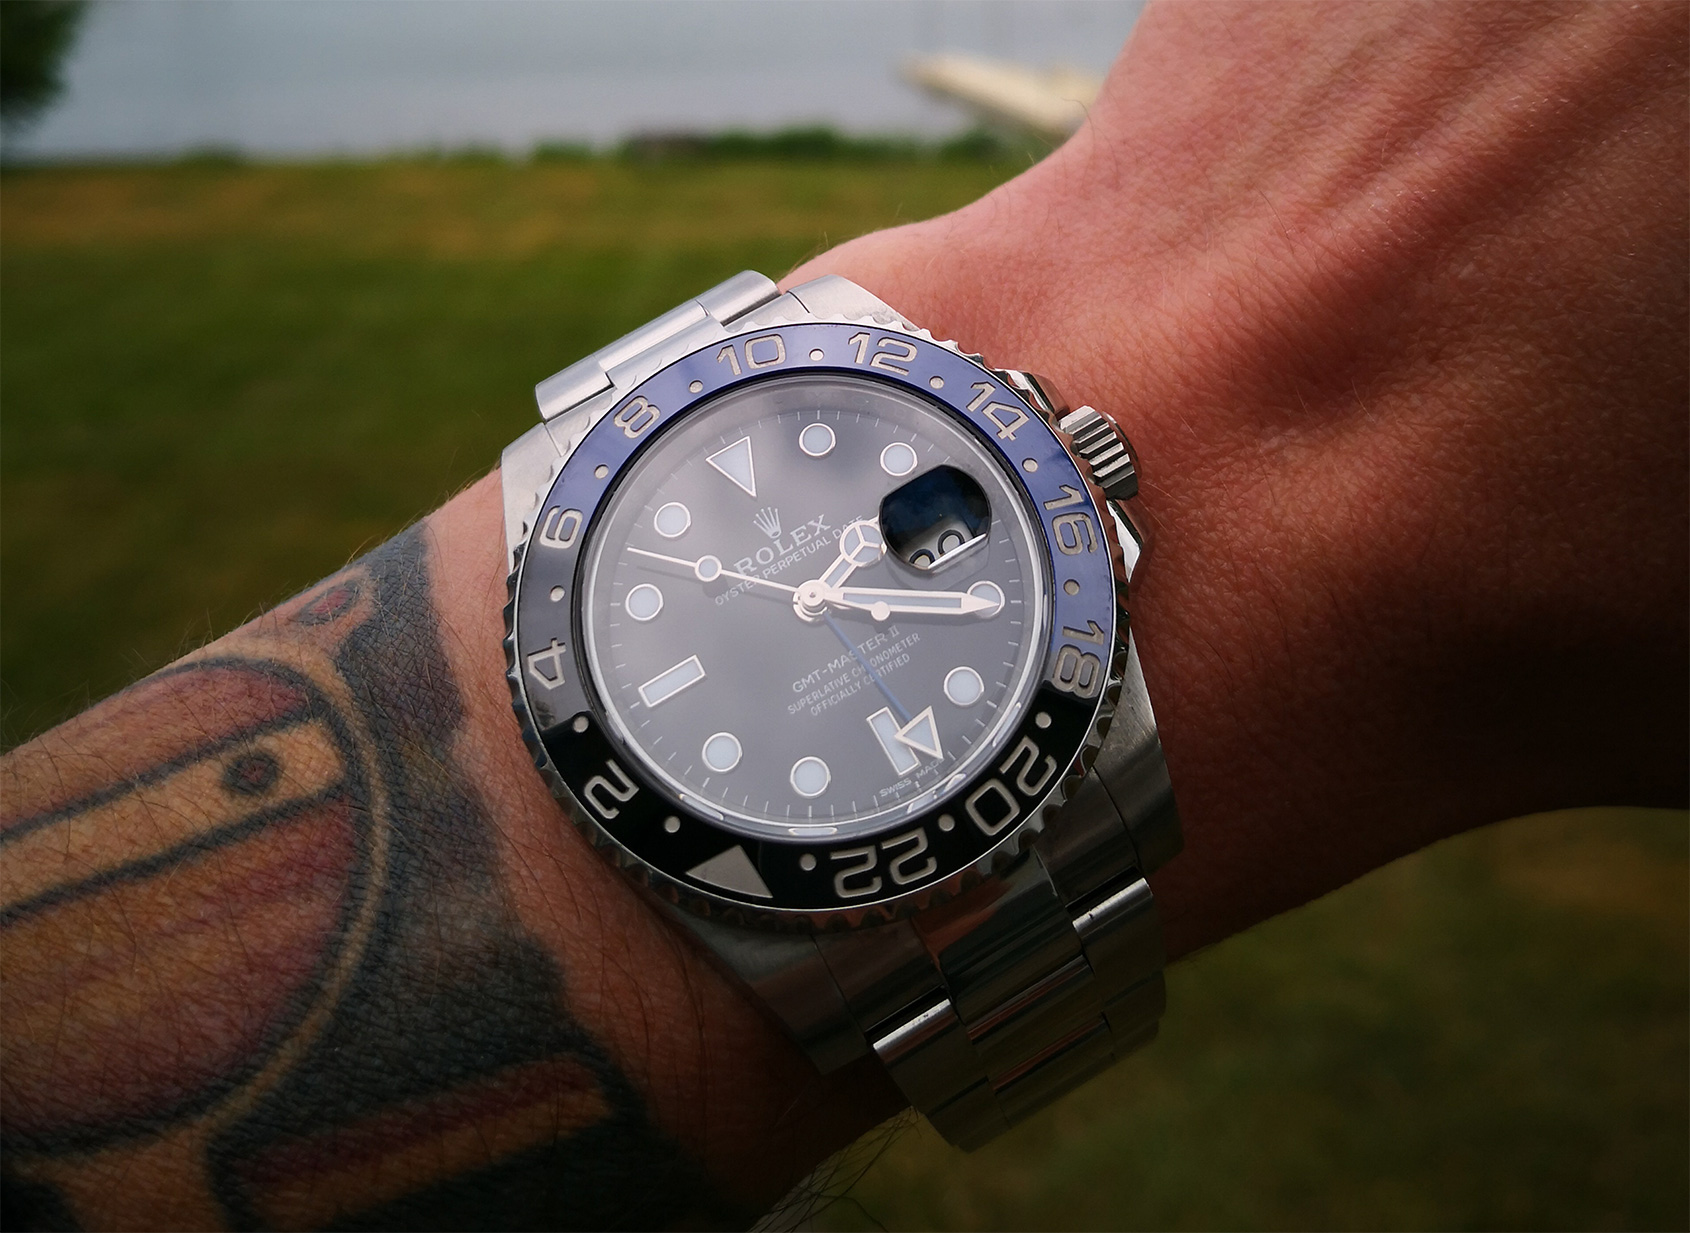 Spending some quality time with the Rolex 116710 BLNR Batman